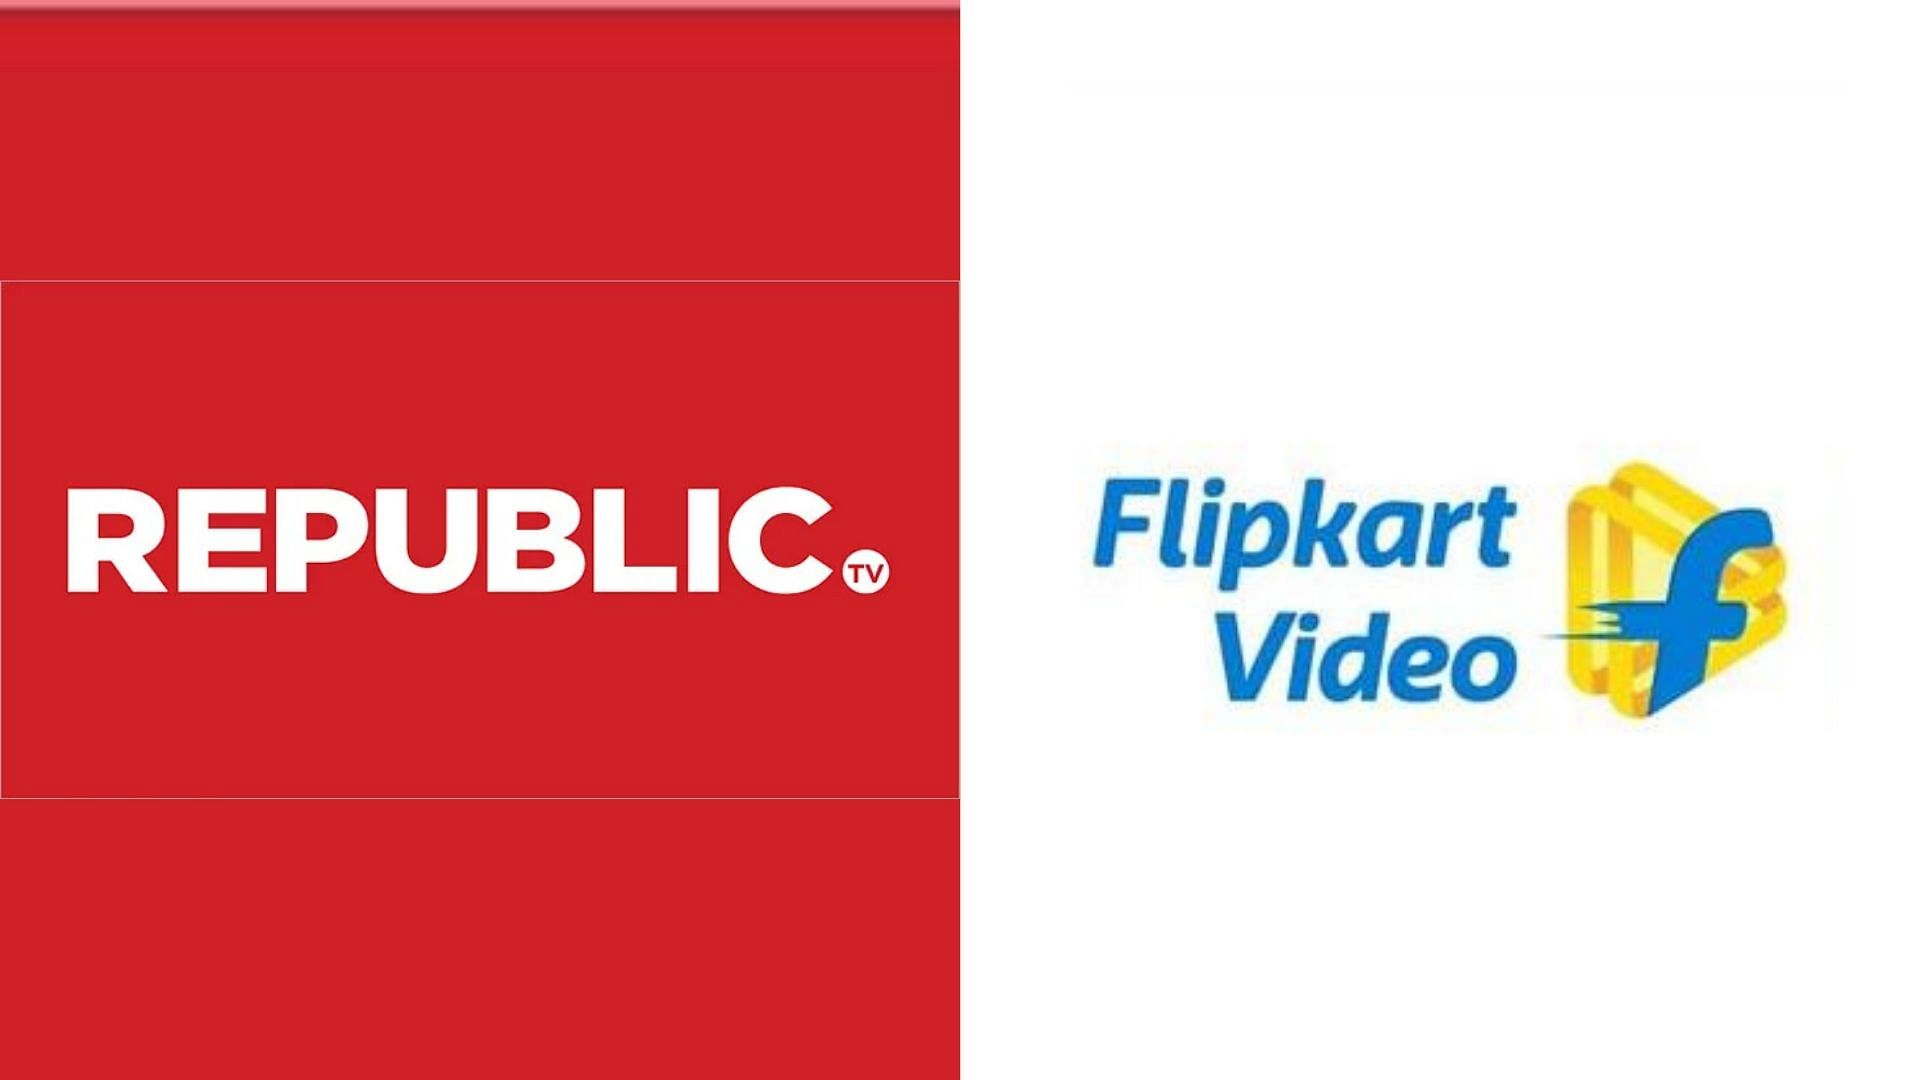 republic flipkart video?blur=25